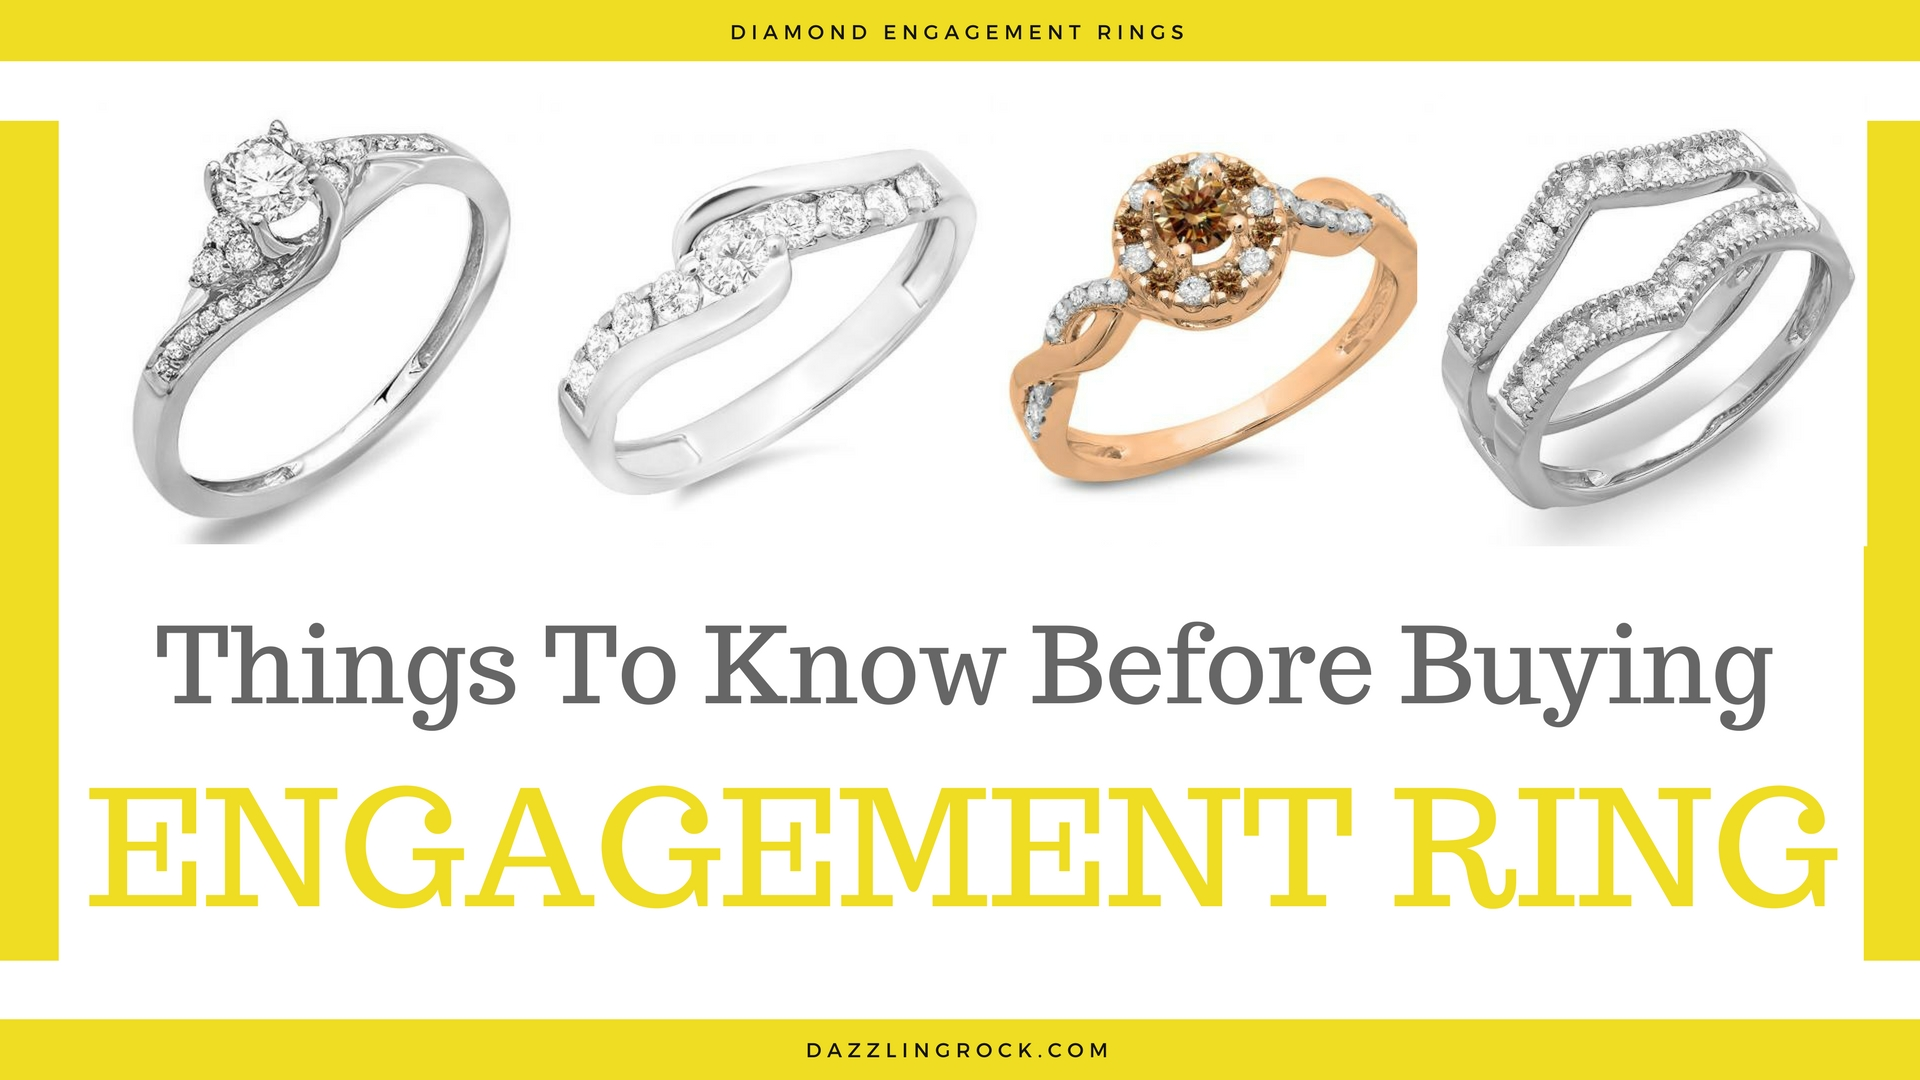 Things To Know Before Buying Your Engagement Ring - dazzling rock